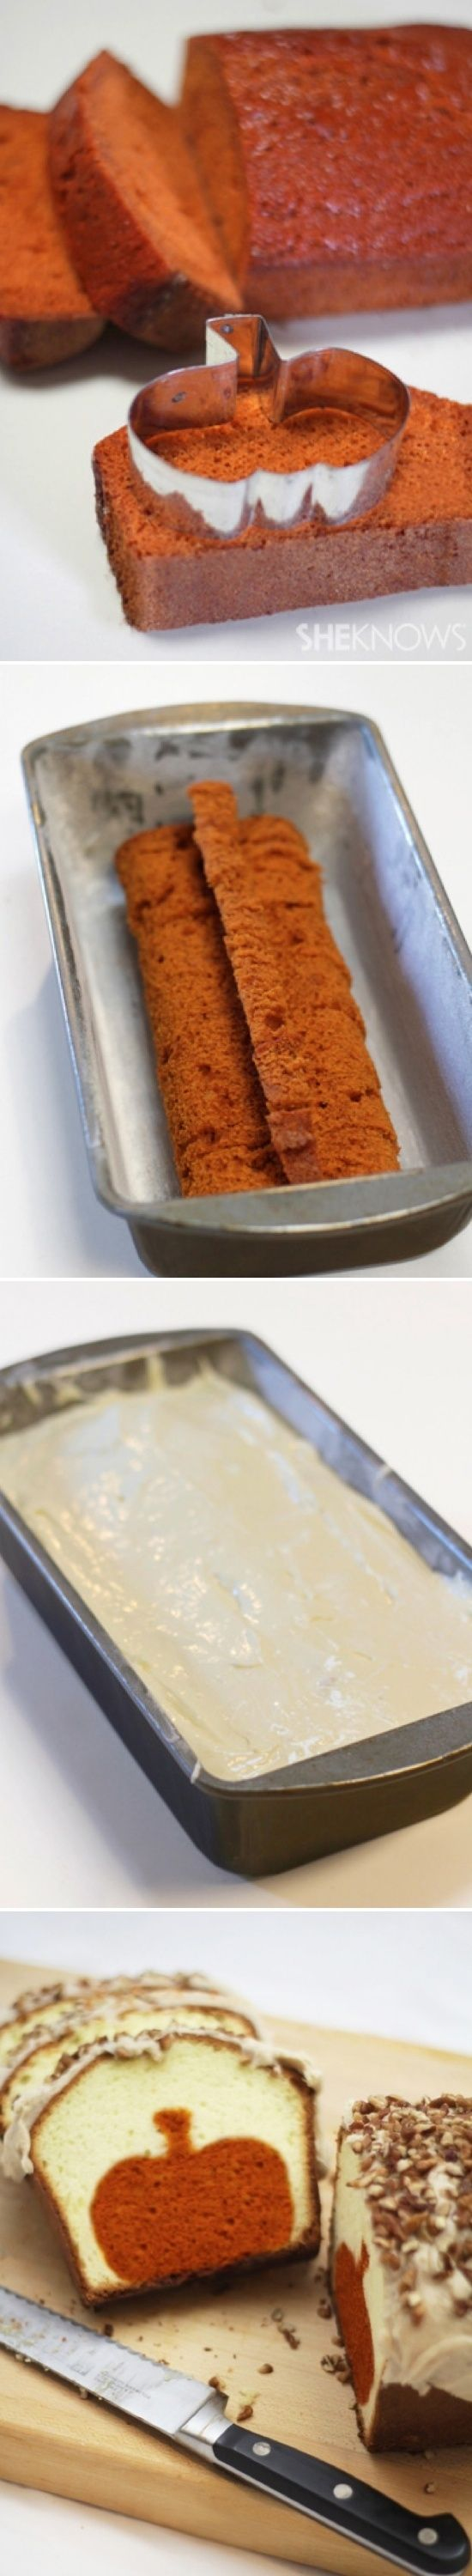 cookie cutter shape loaf cakes--the possibilities are endless